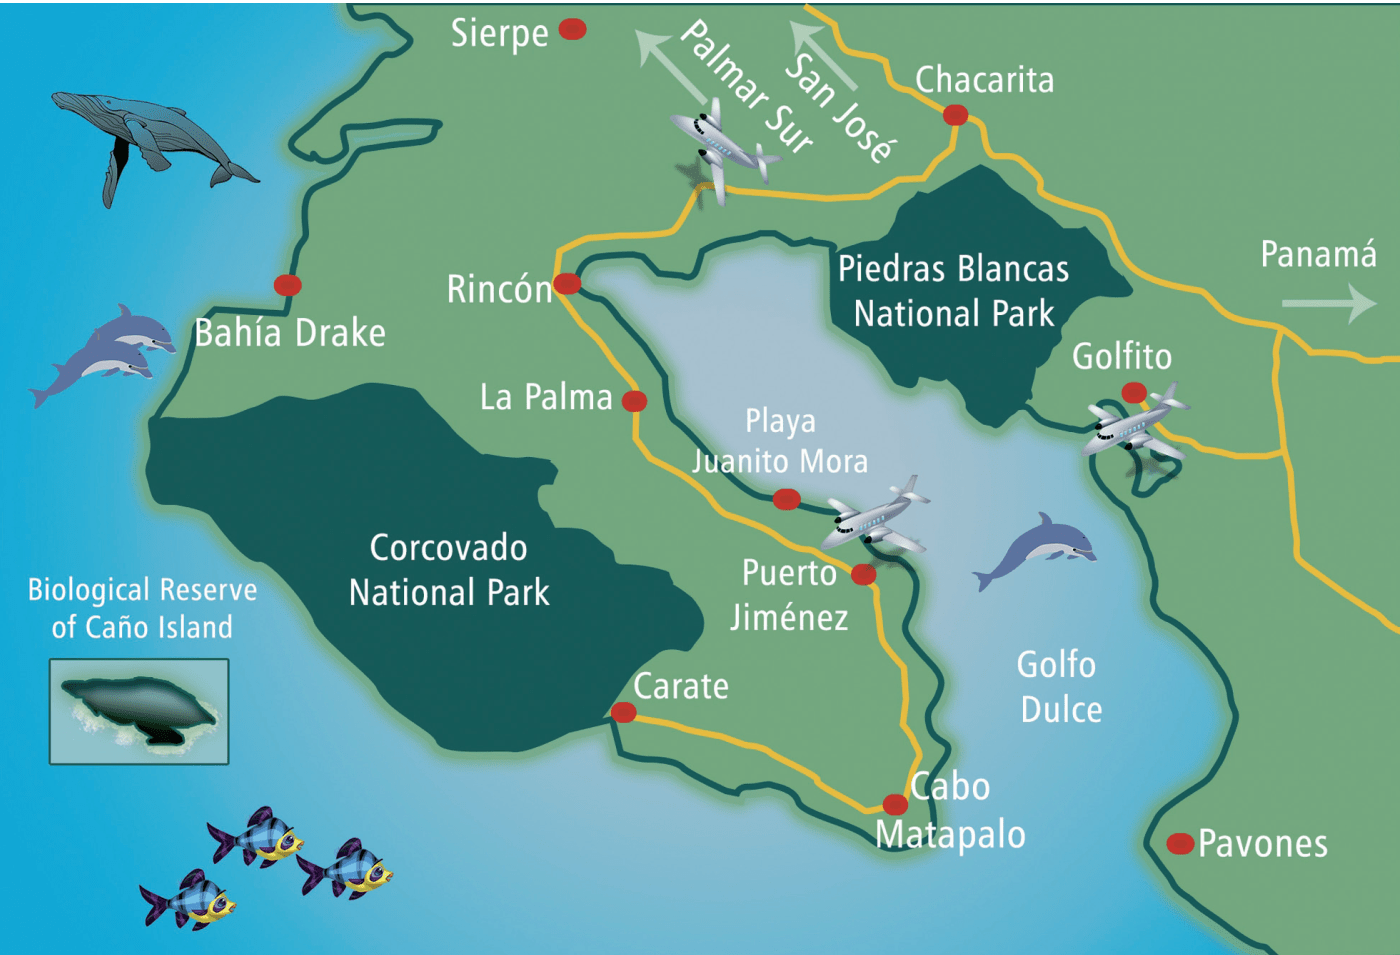 Corcovado National Park The Osa Peninsula and the South Pacific, How to get to Puerto Jimenez, Osa Peninsula in Costa Rica